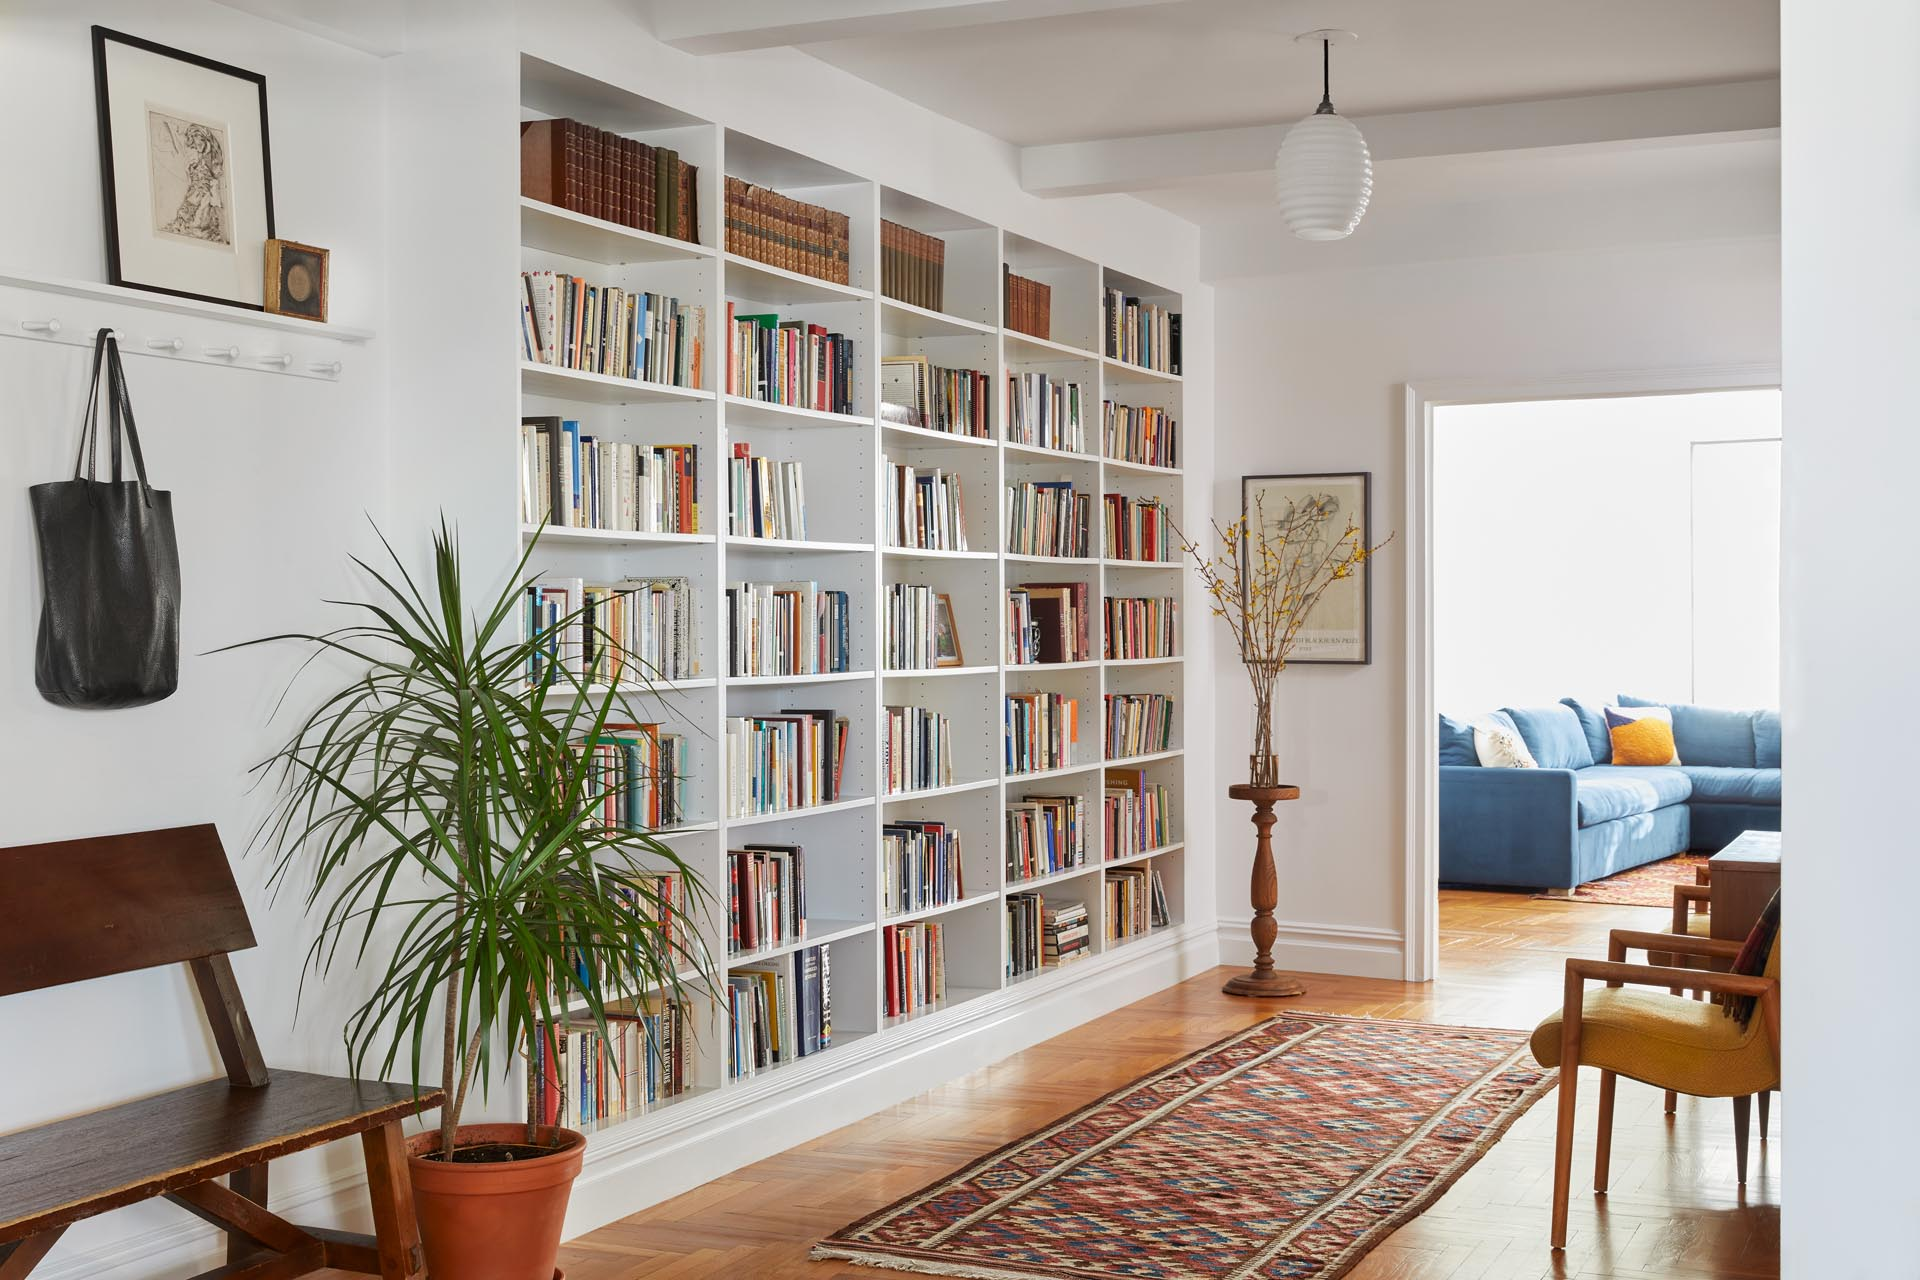 A remodeled entryway with a vintage German Opaline Glass Bauhaus lighting fixture, a Shaker-style hook/shelf system, and a floor-to-ceiling bookcase.